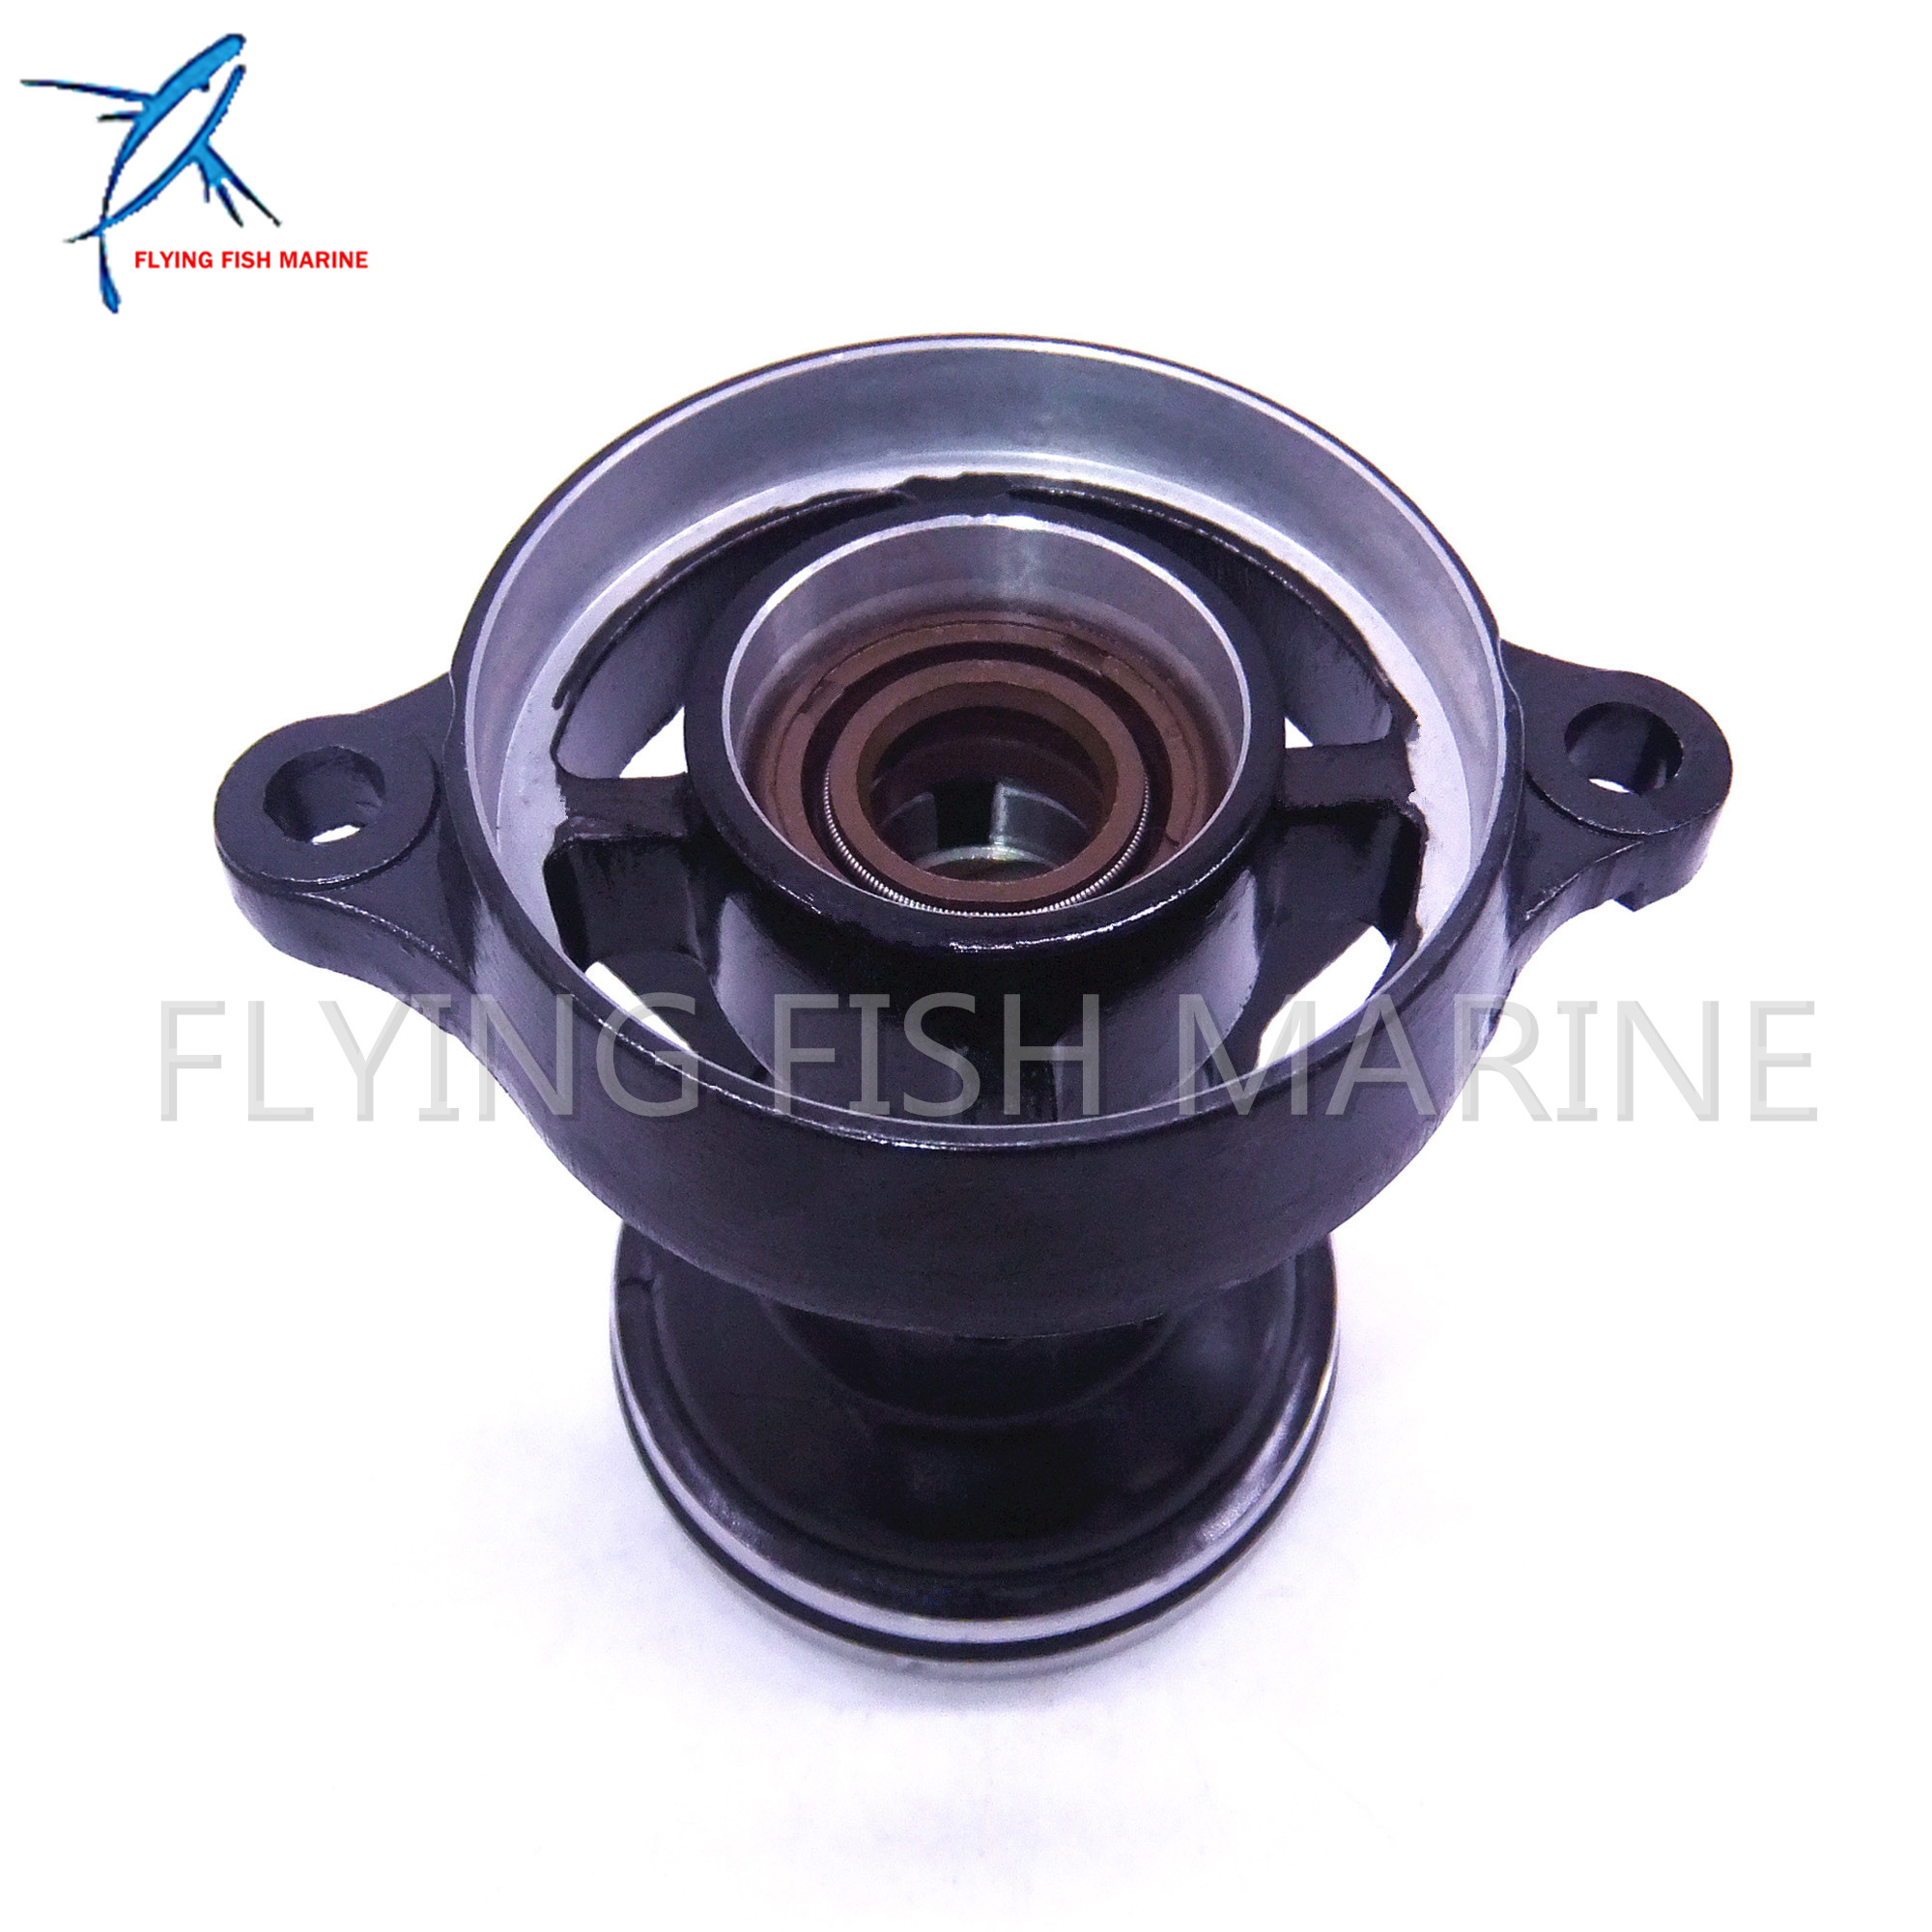 F8 04040000 Lower Casing Cap Cover Assy with Bearing for Parsun HDX SEA PRO Makara F9